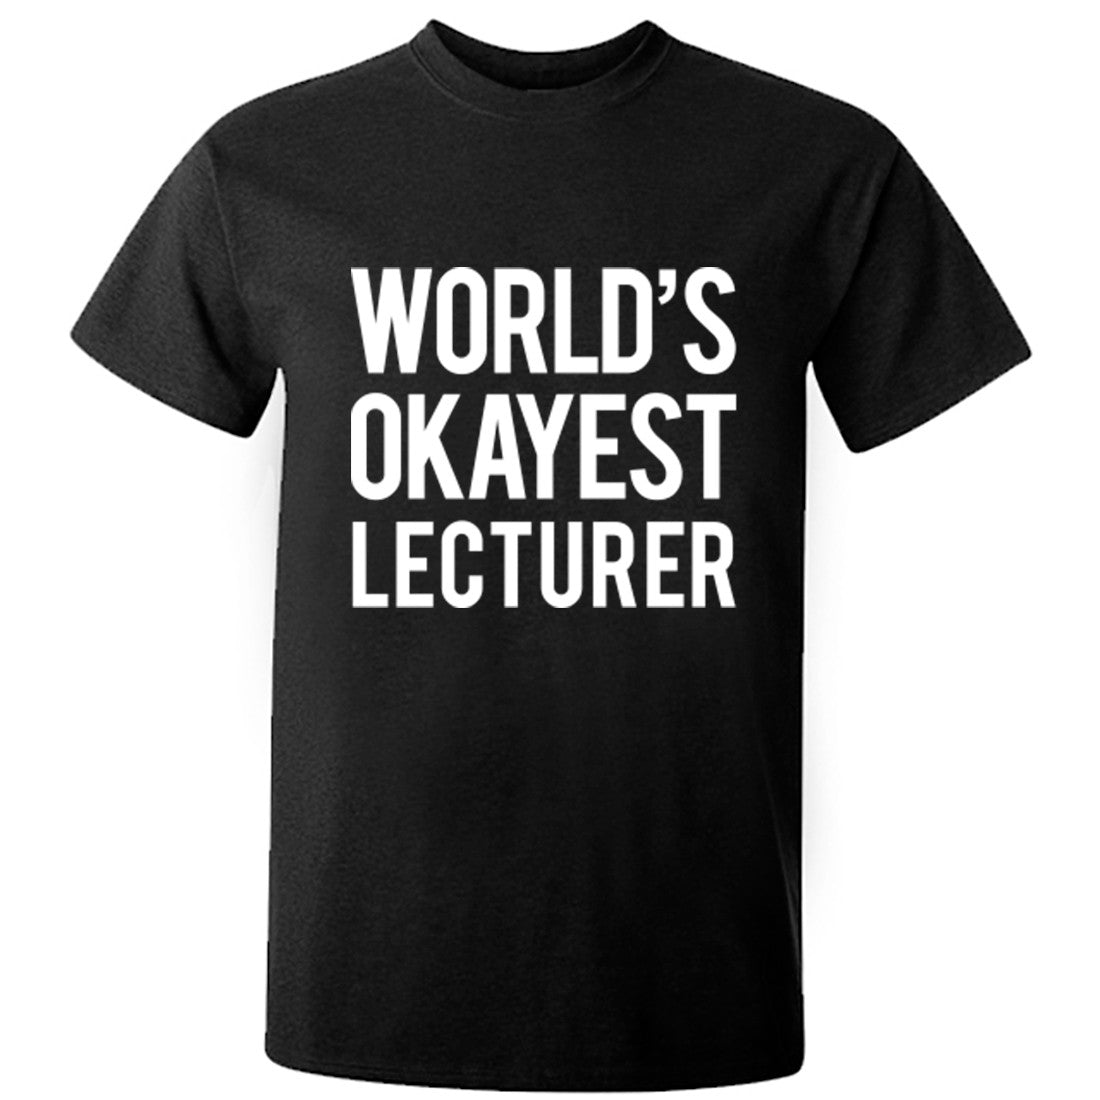 Worlds Okayest Lecturer Unisex Fit T-Shirt K0499 - Illustrated Identity Ltd.